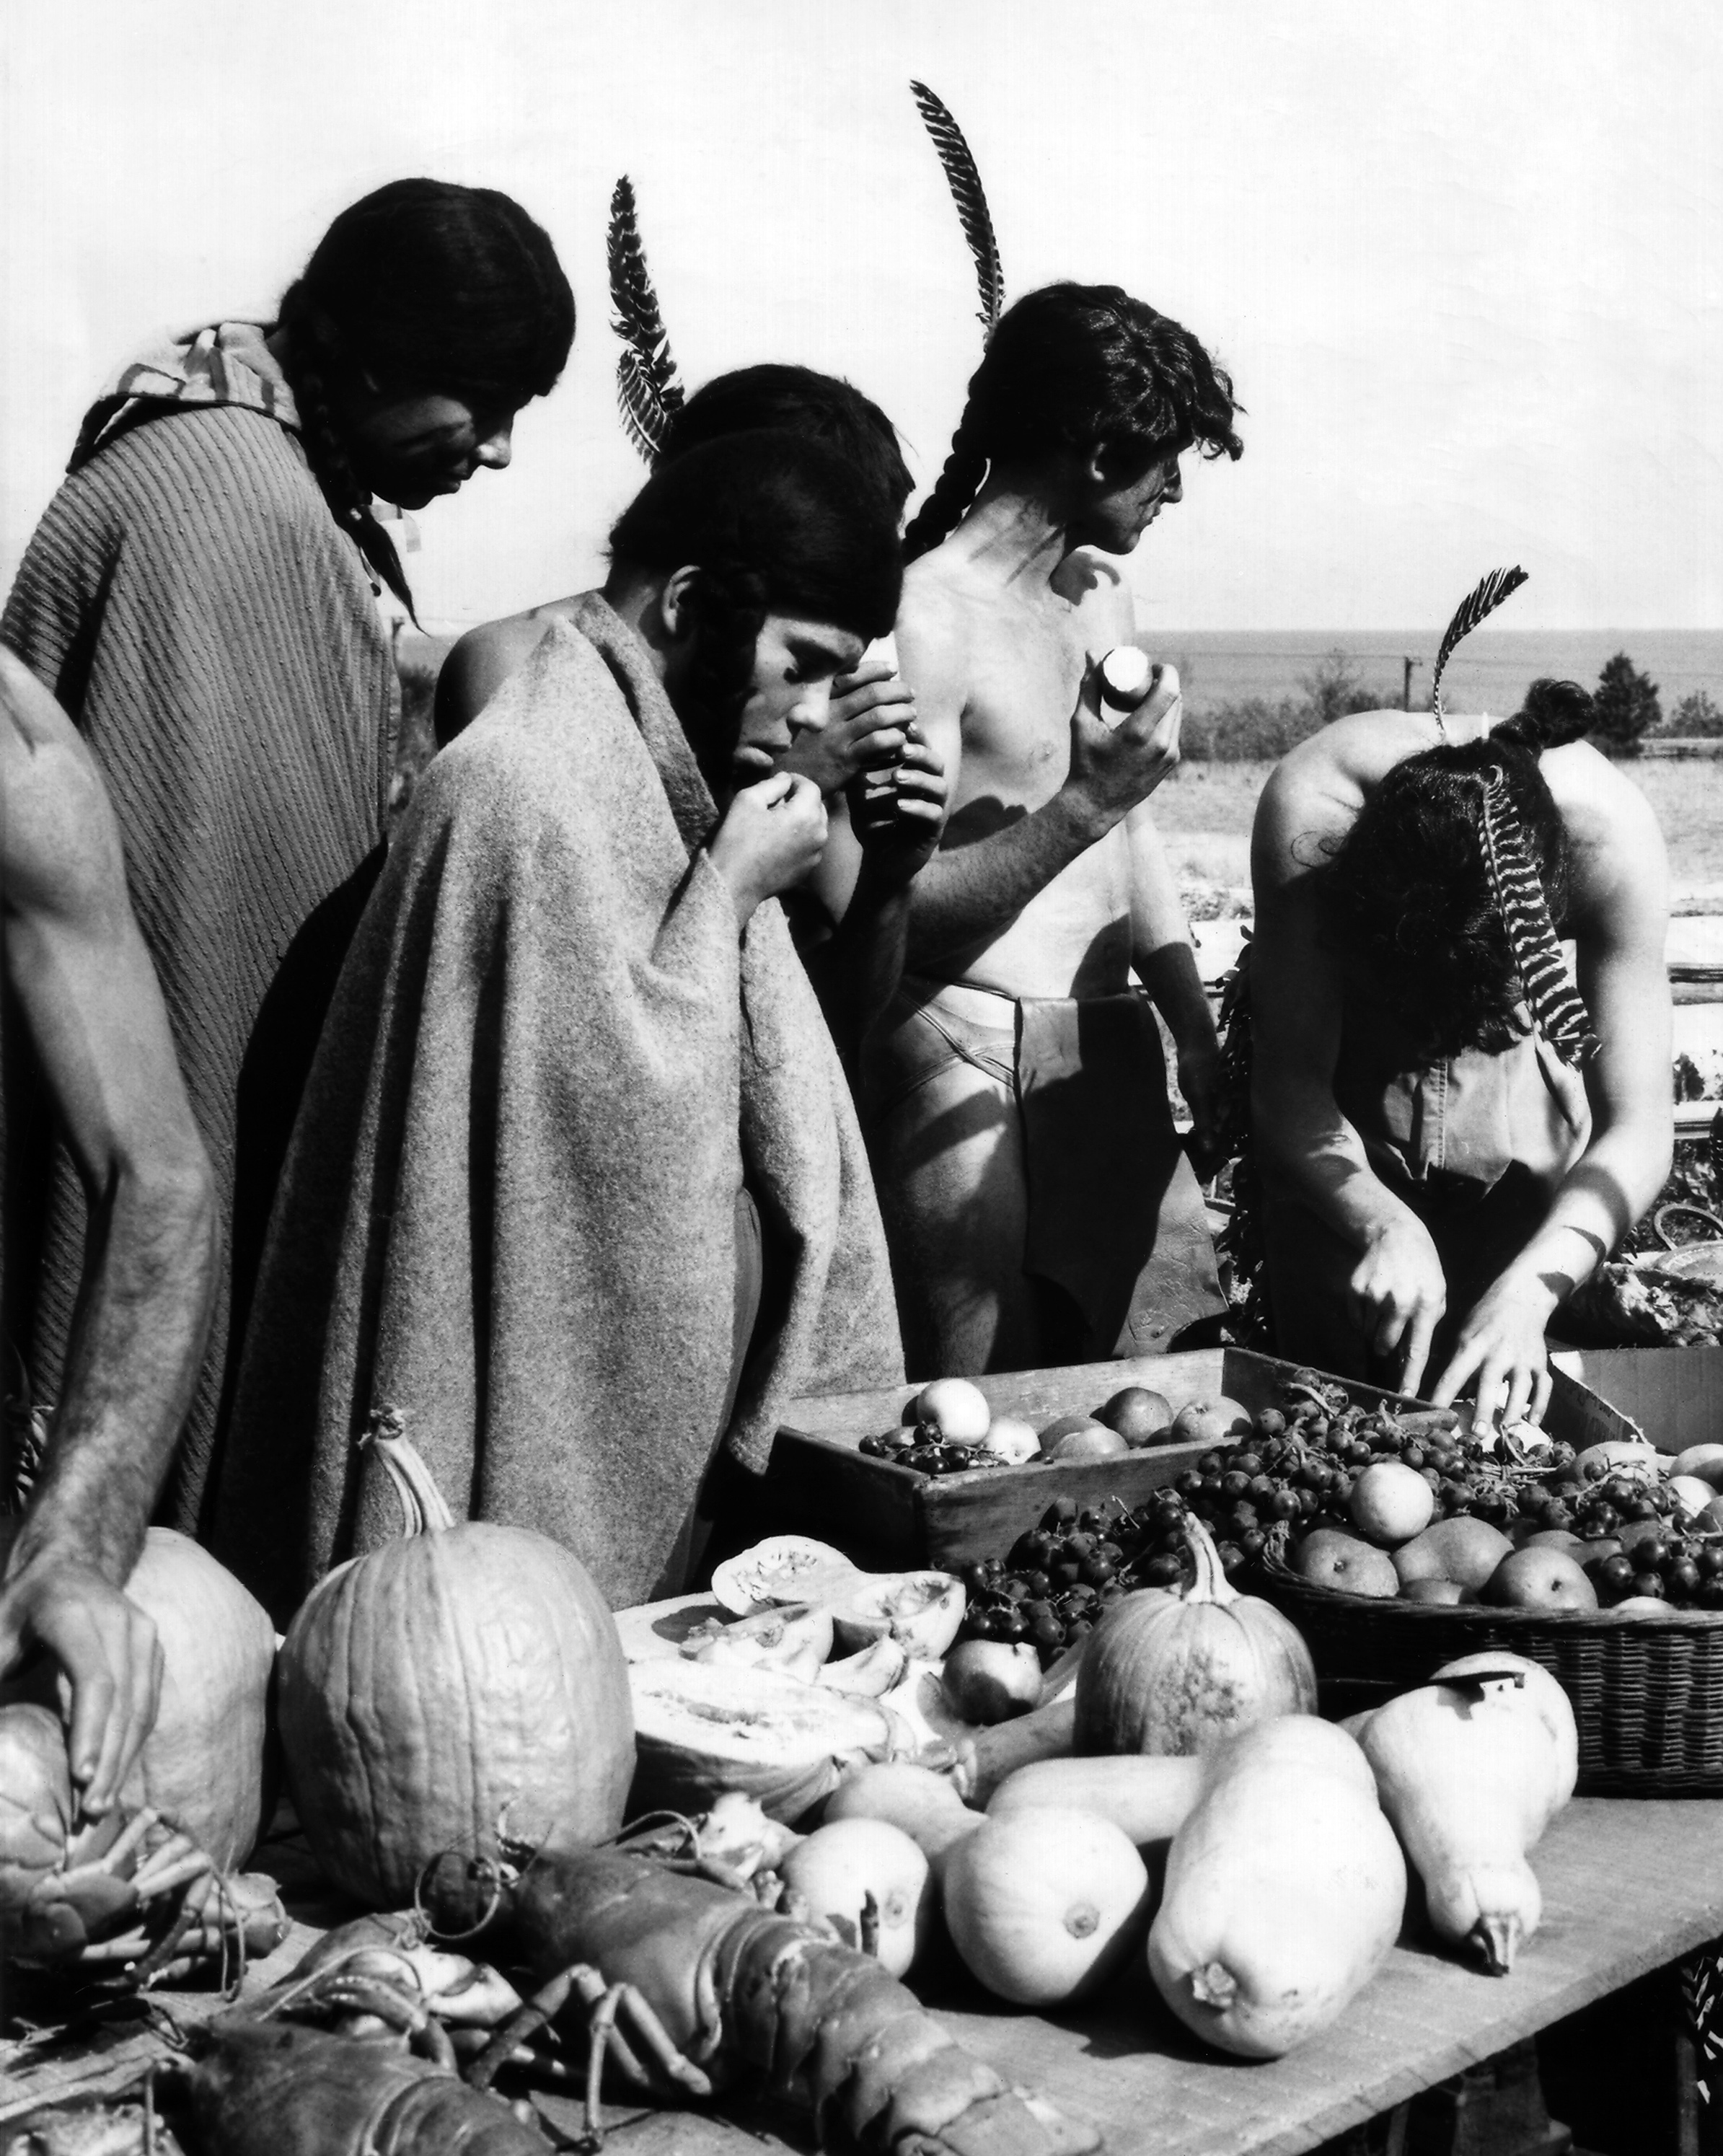 thanksgiving the annual genocide whitewash us canada al jazeera Winston the Last of Us native americans are depicted at the first thanksgiving feast in a scene from a 1960 educational film about the pilgrims first year in america ap